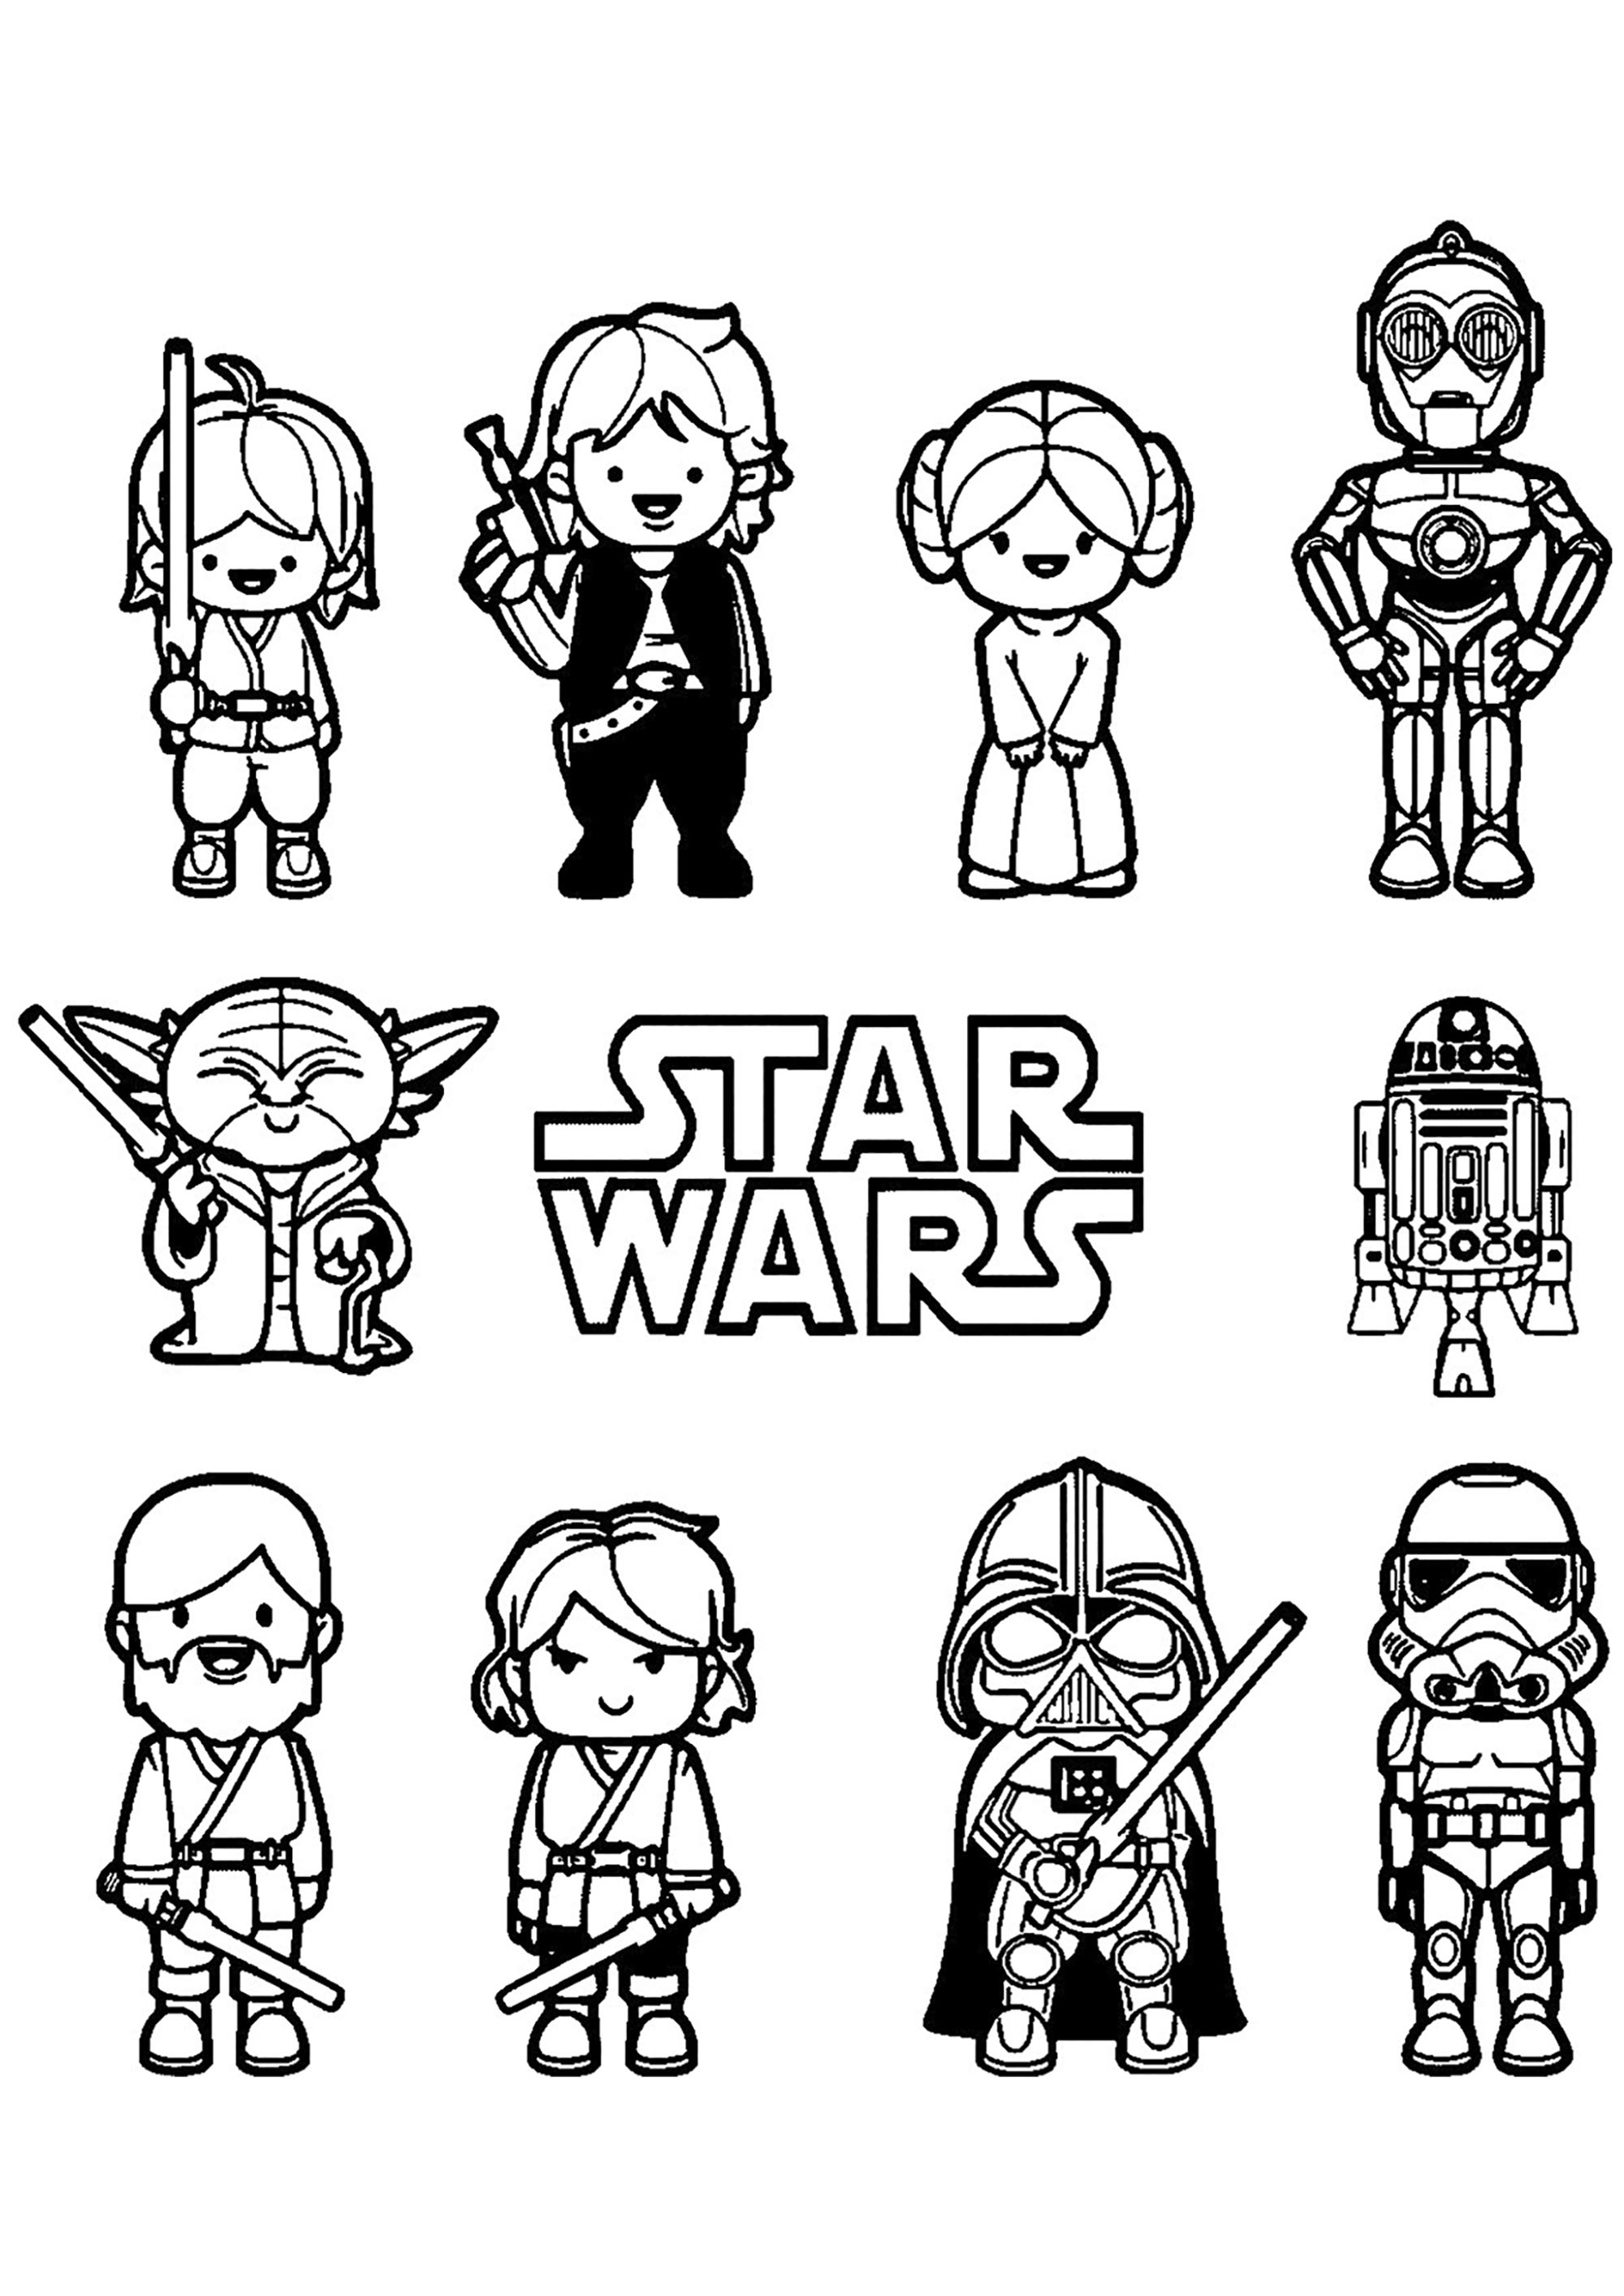 star wars coloring page star wars color by number math worksheets sketch coloring page coloring wars star page